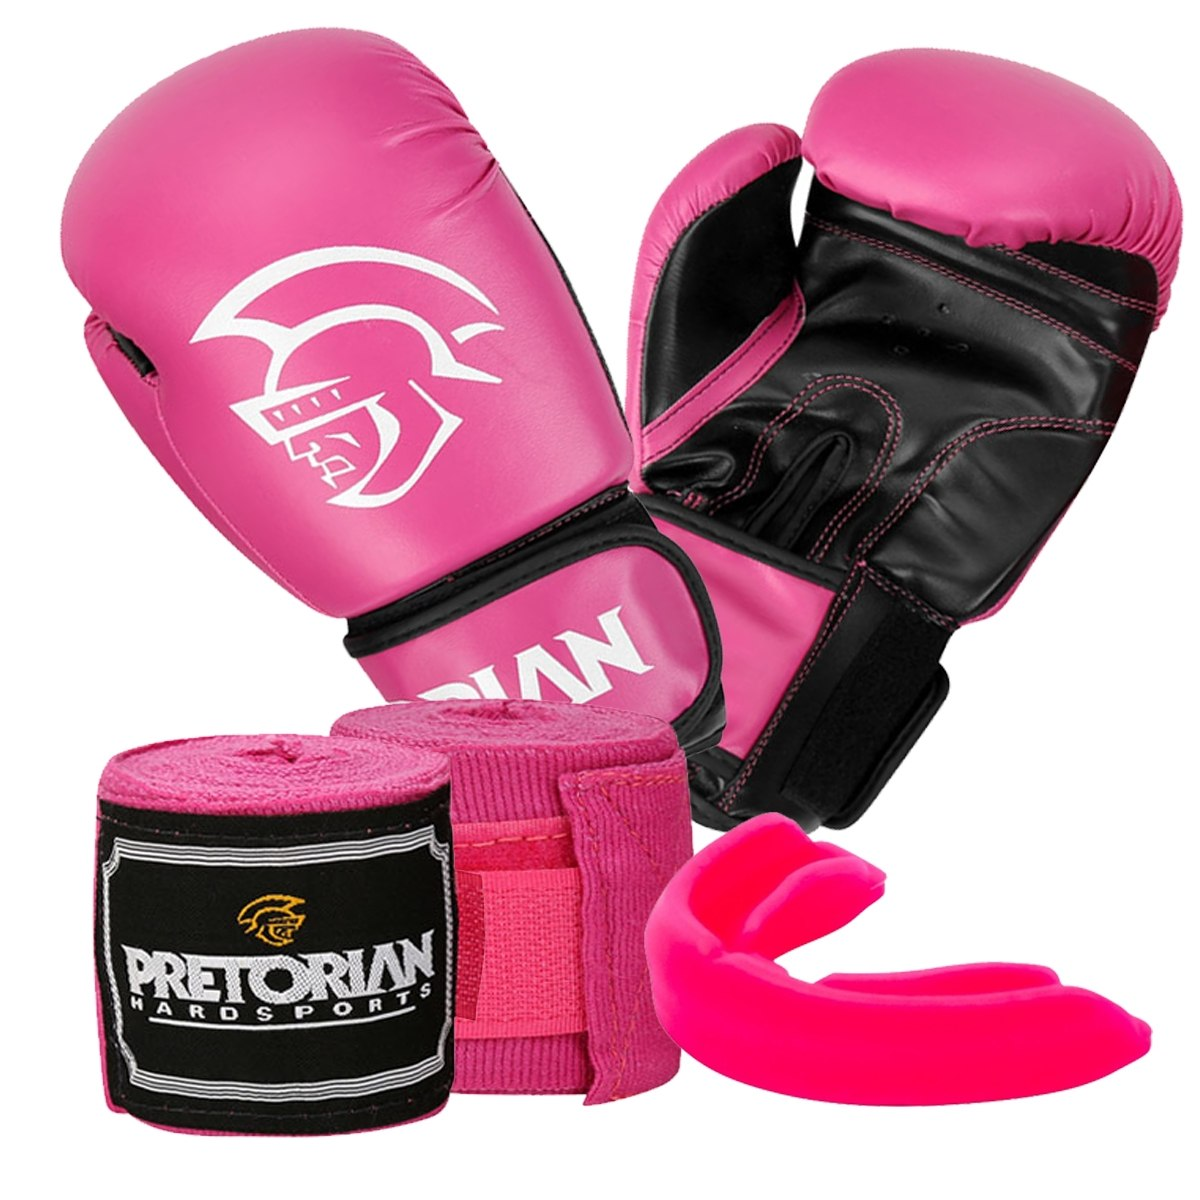 f5c16632d kit boxe muay thai first pretorian bucal bandagem luva 10oz. Carregando  zoom.